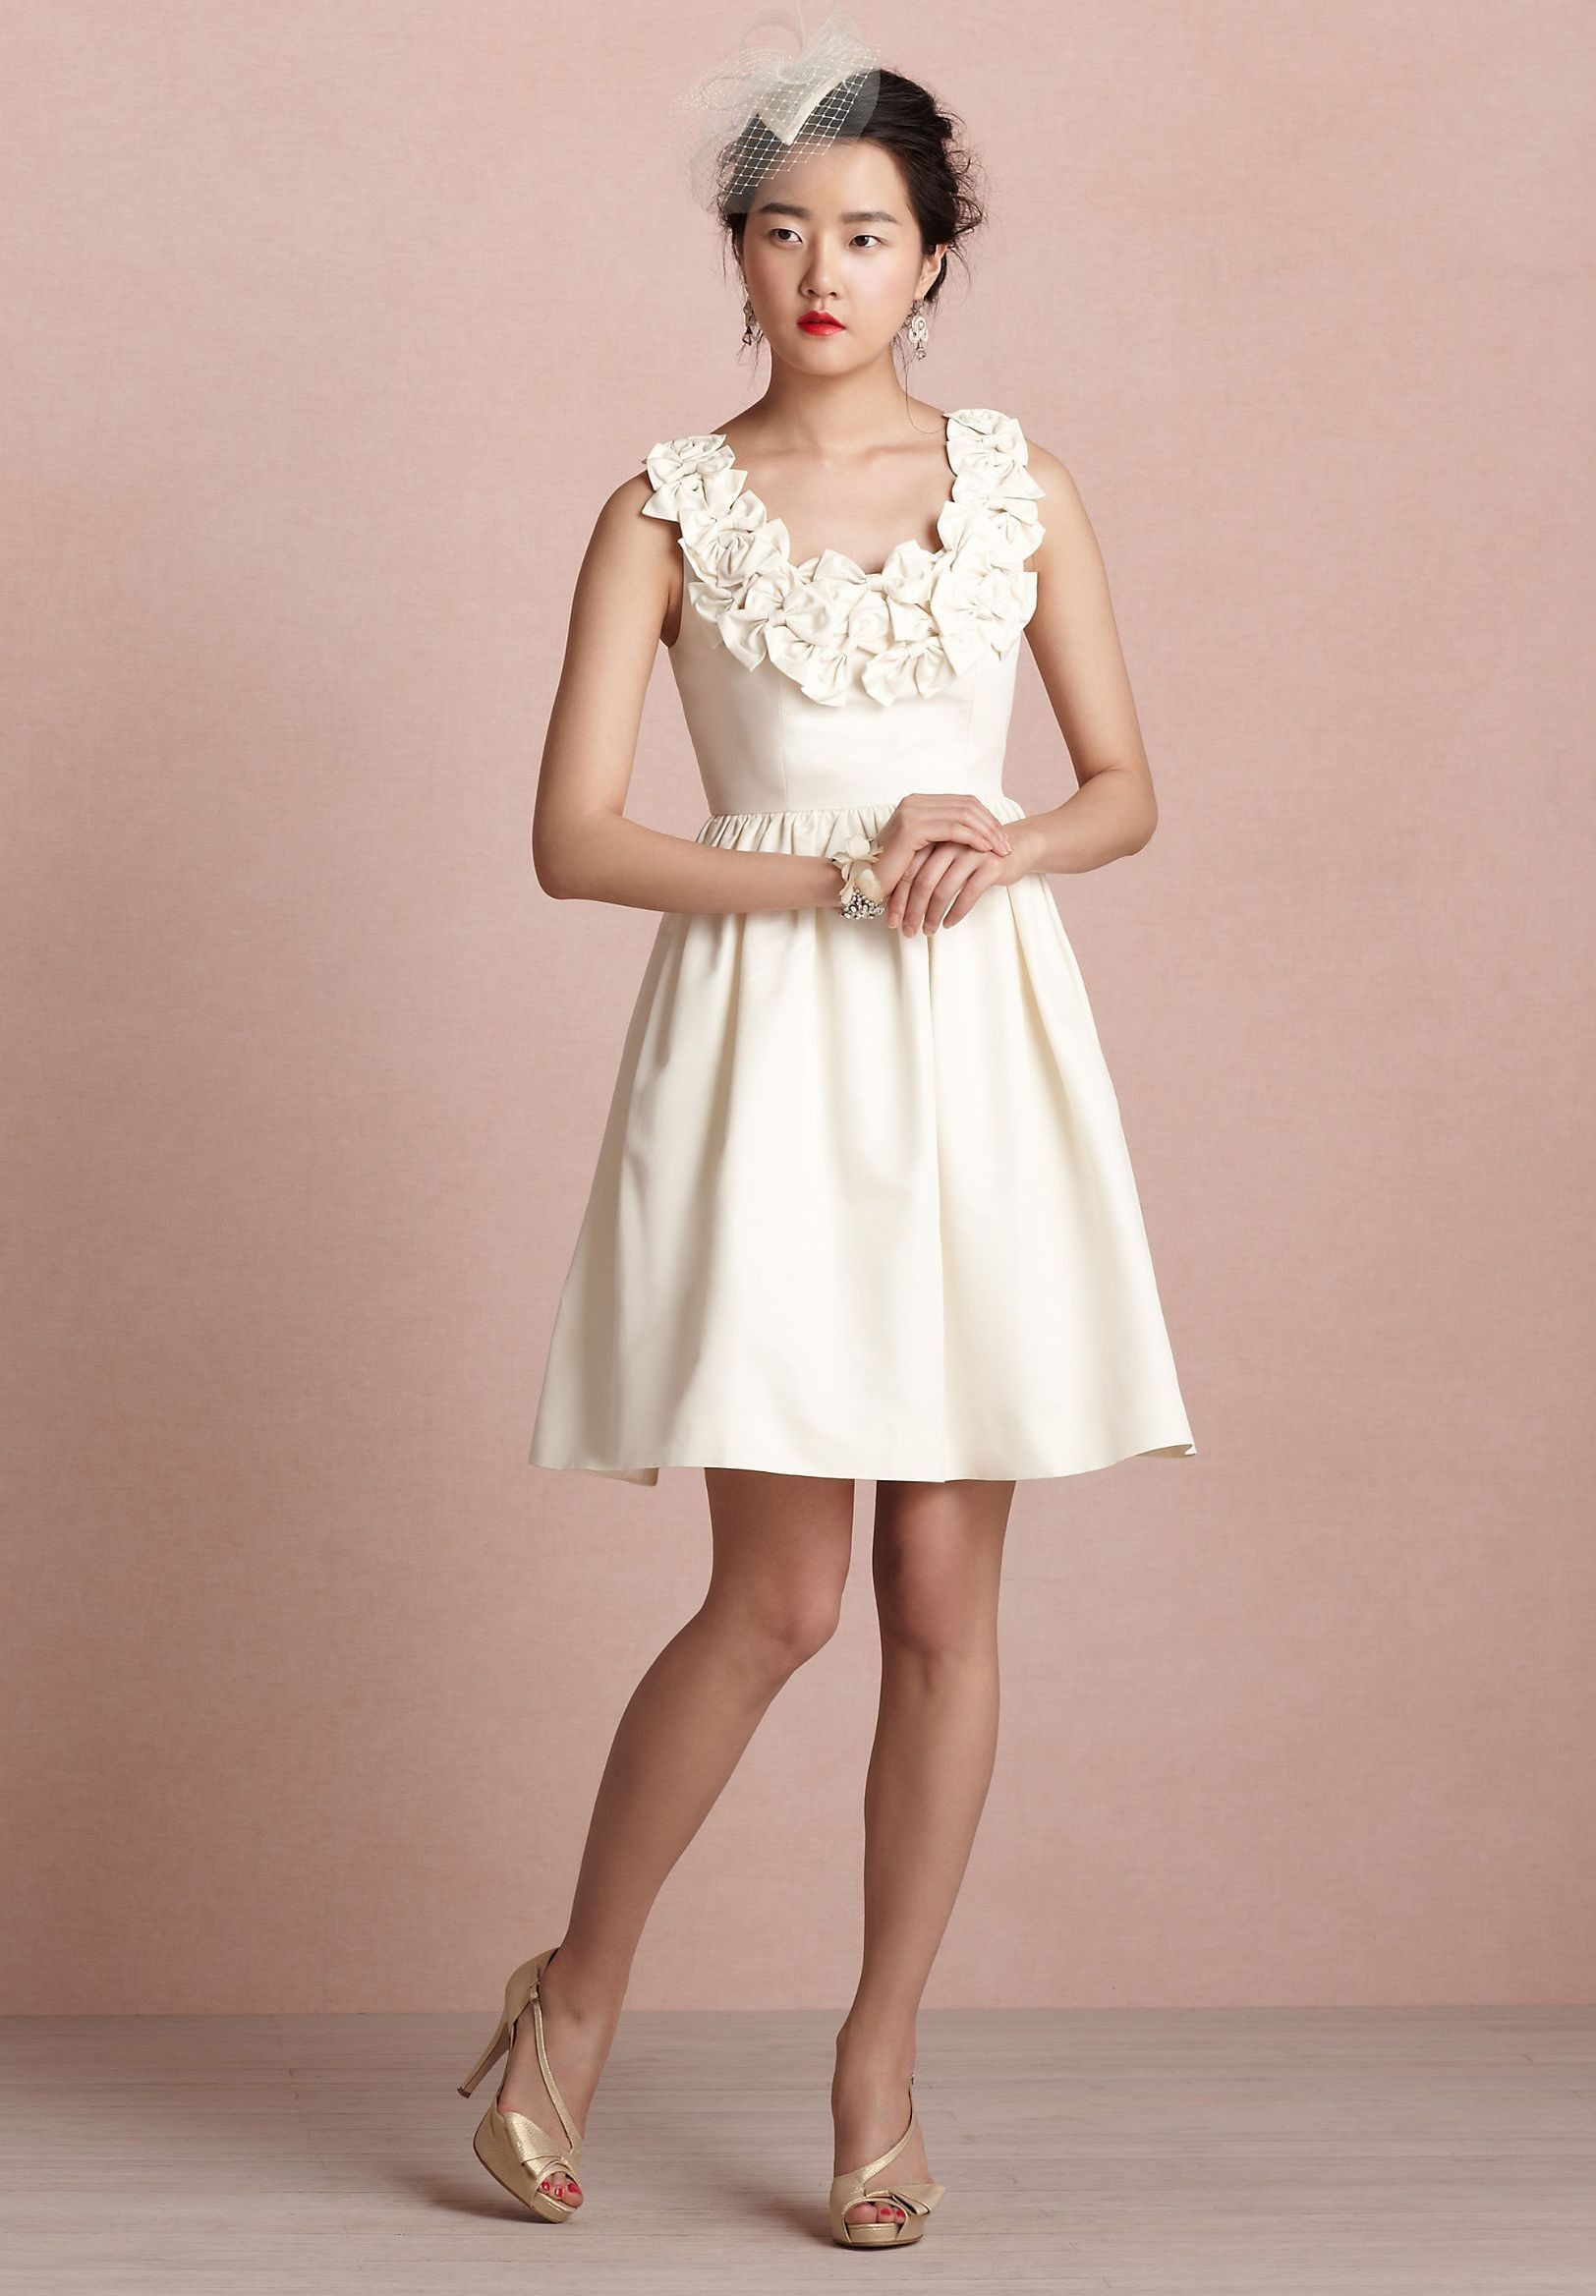 Reception wedding dresslittle white dress wedding dresses